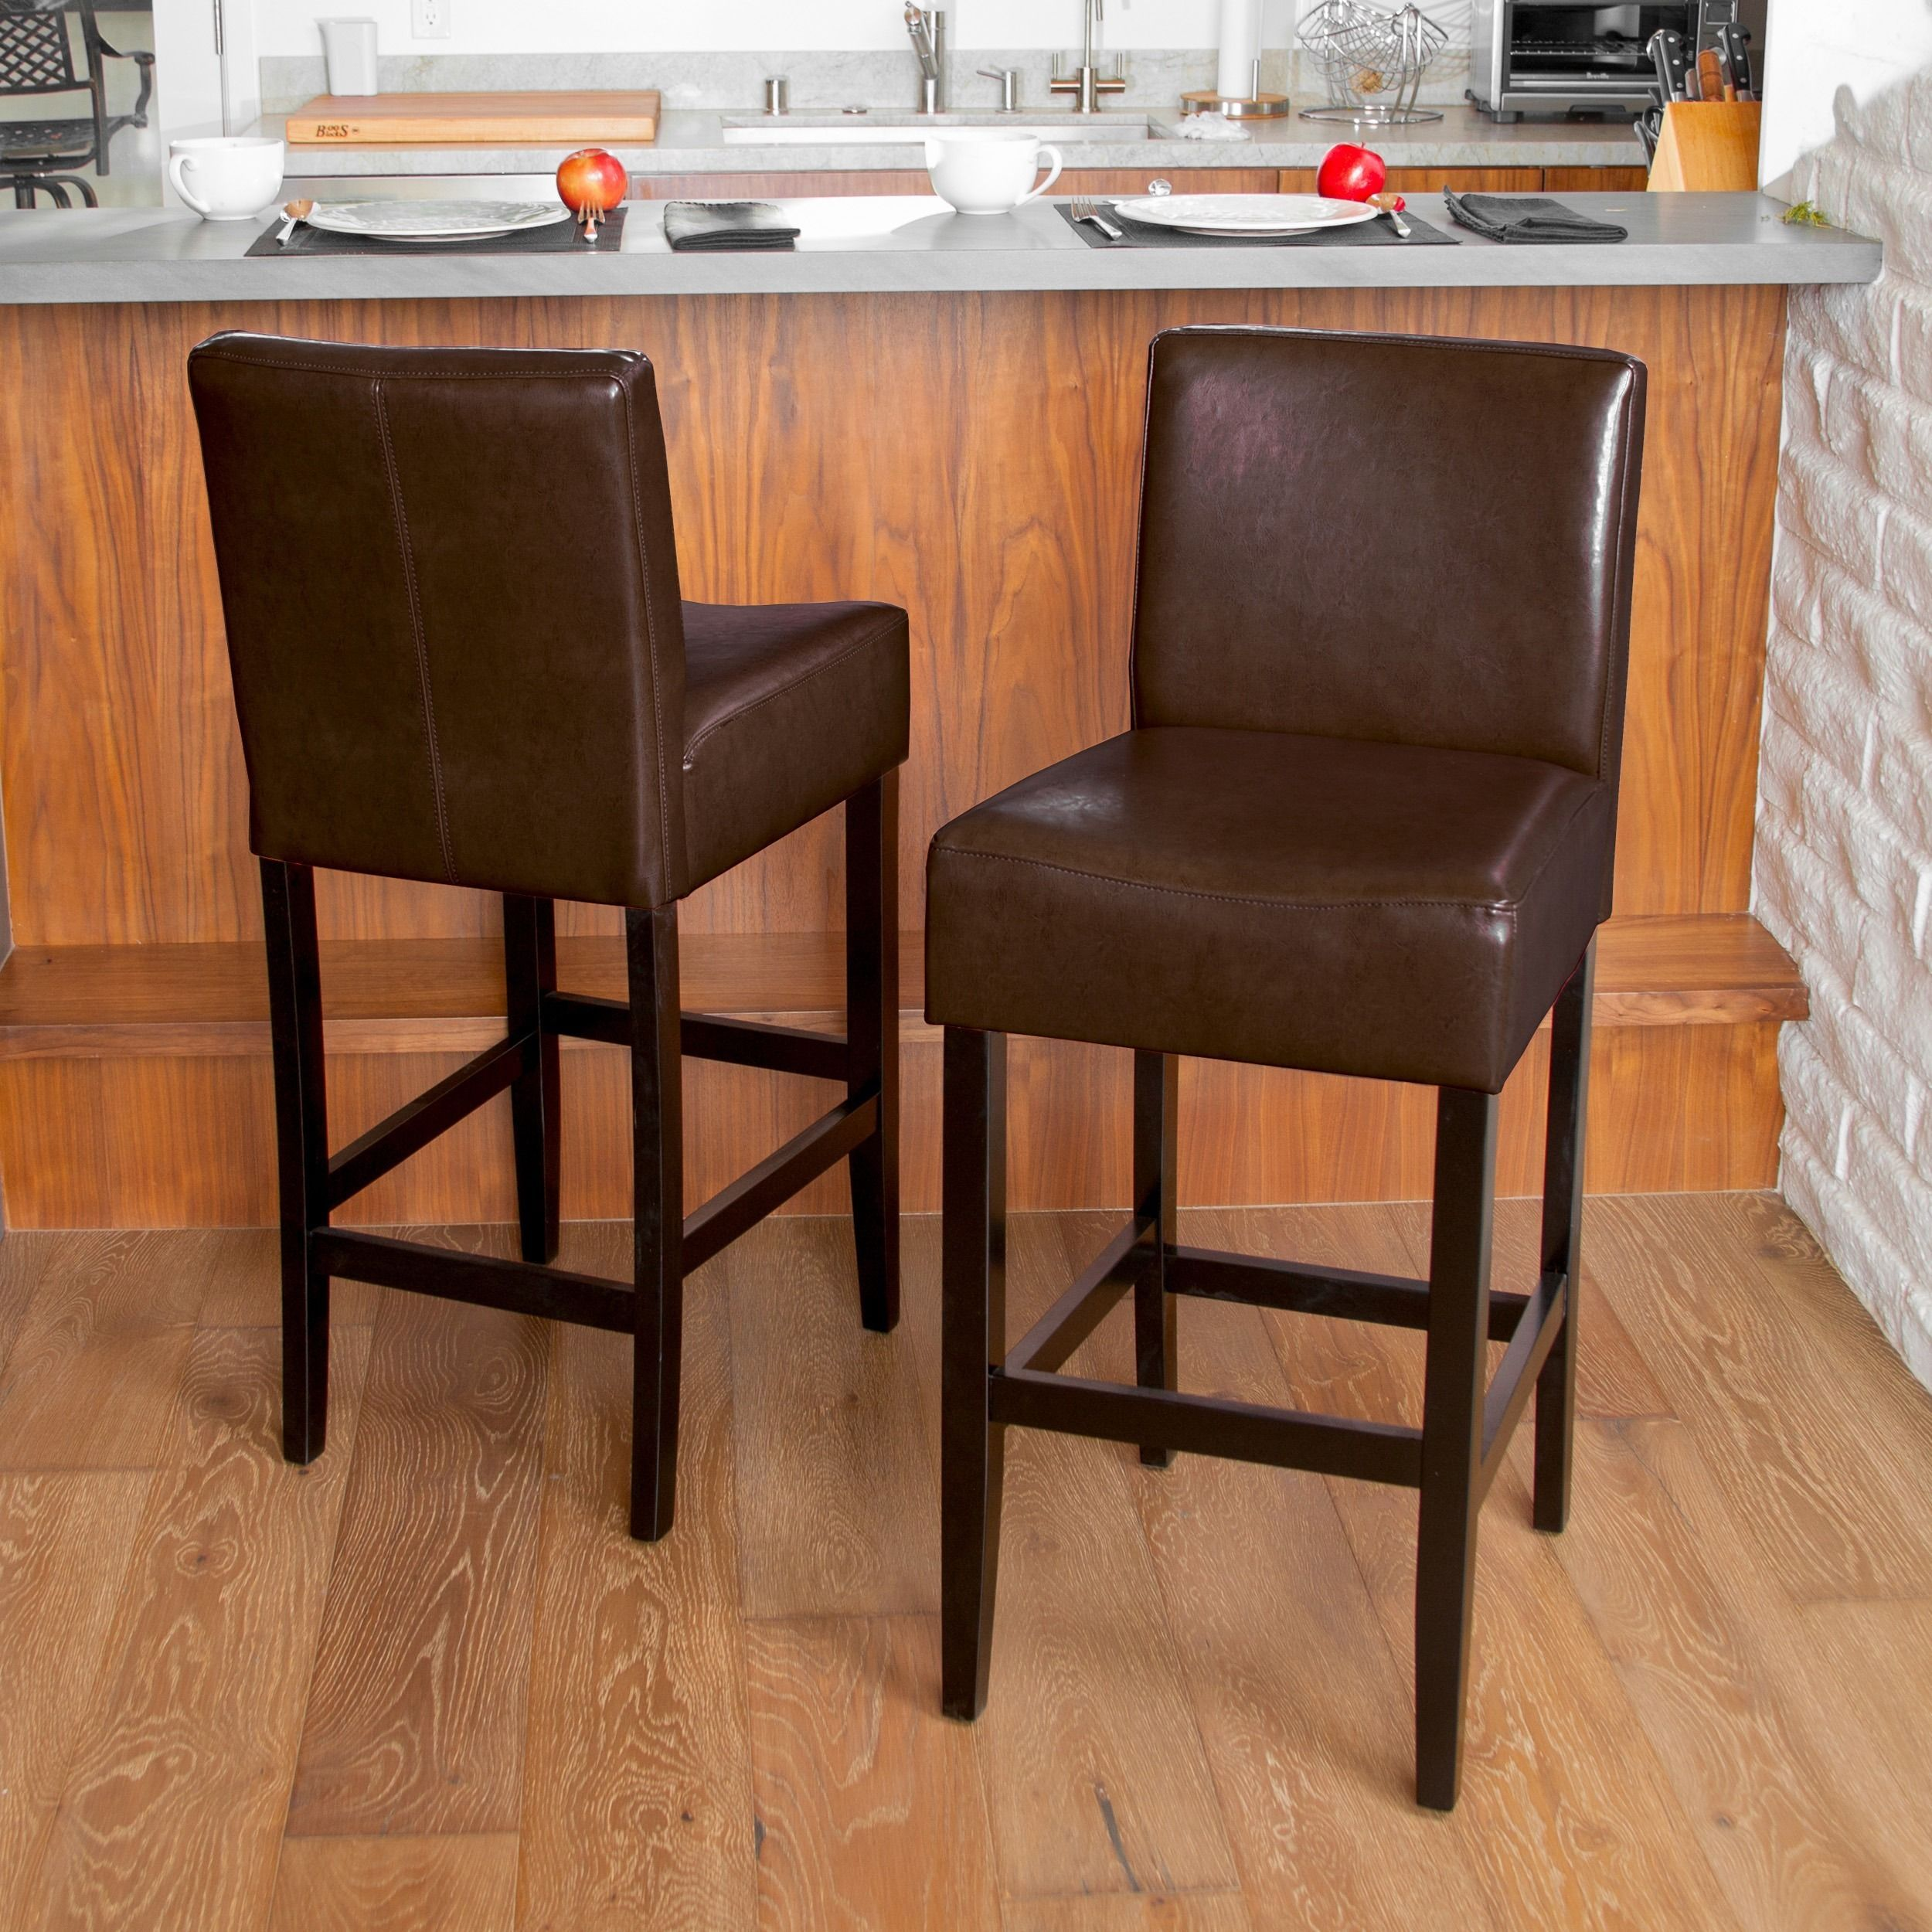 Lopez 30 Inch Brown Leather Bar Stools By Christopher Knight Home Set Of 2 Brown Leather Bar Stools Leather Bar Stools Bar Stools